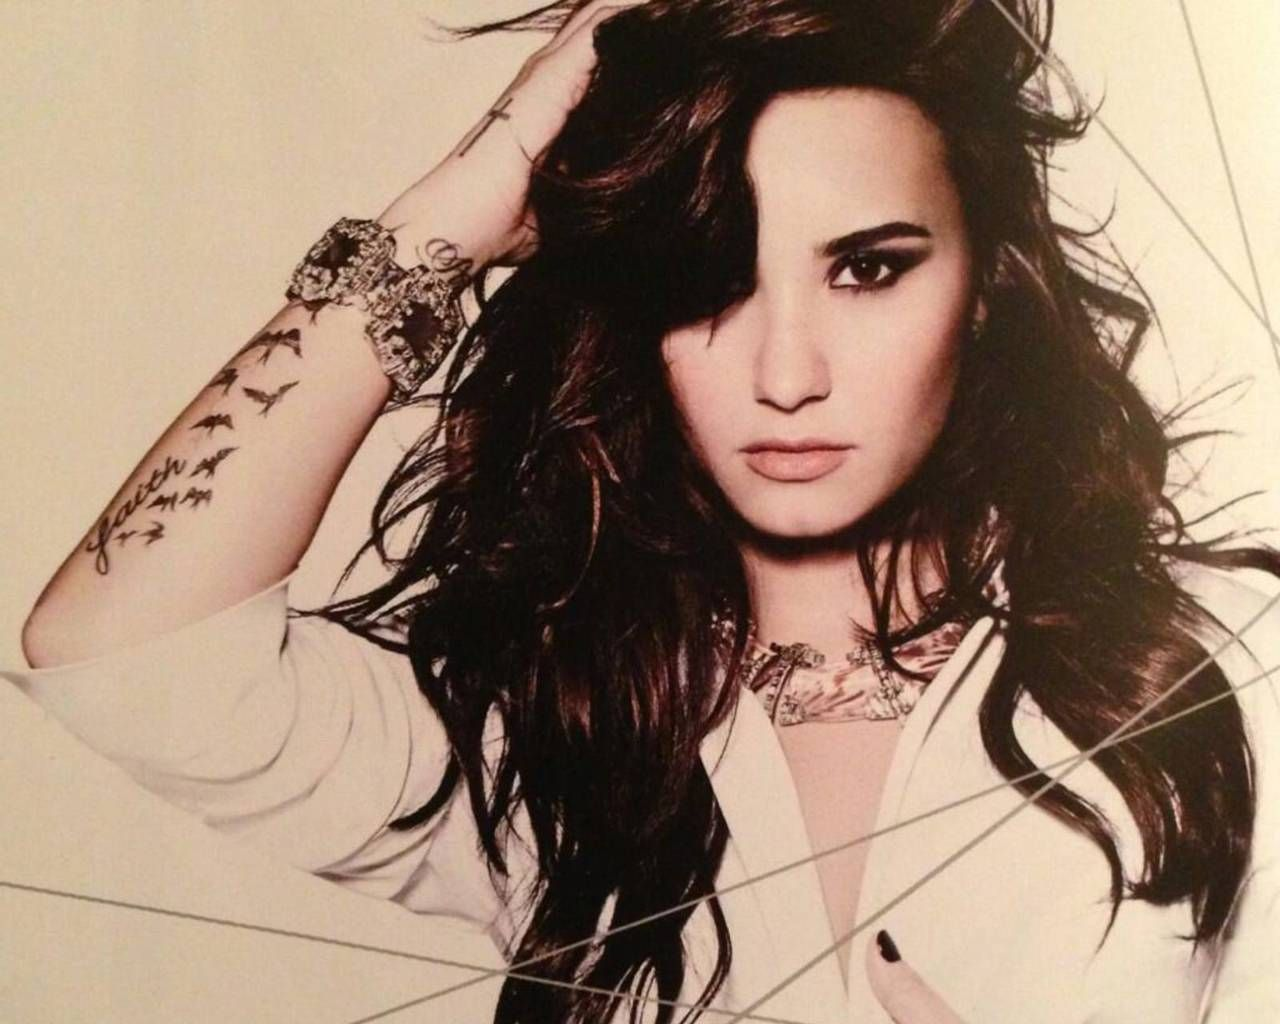 Pictures of Demi lovato posters 2014   Demi Lovato NEEDS To Meet Kevin Bacon!